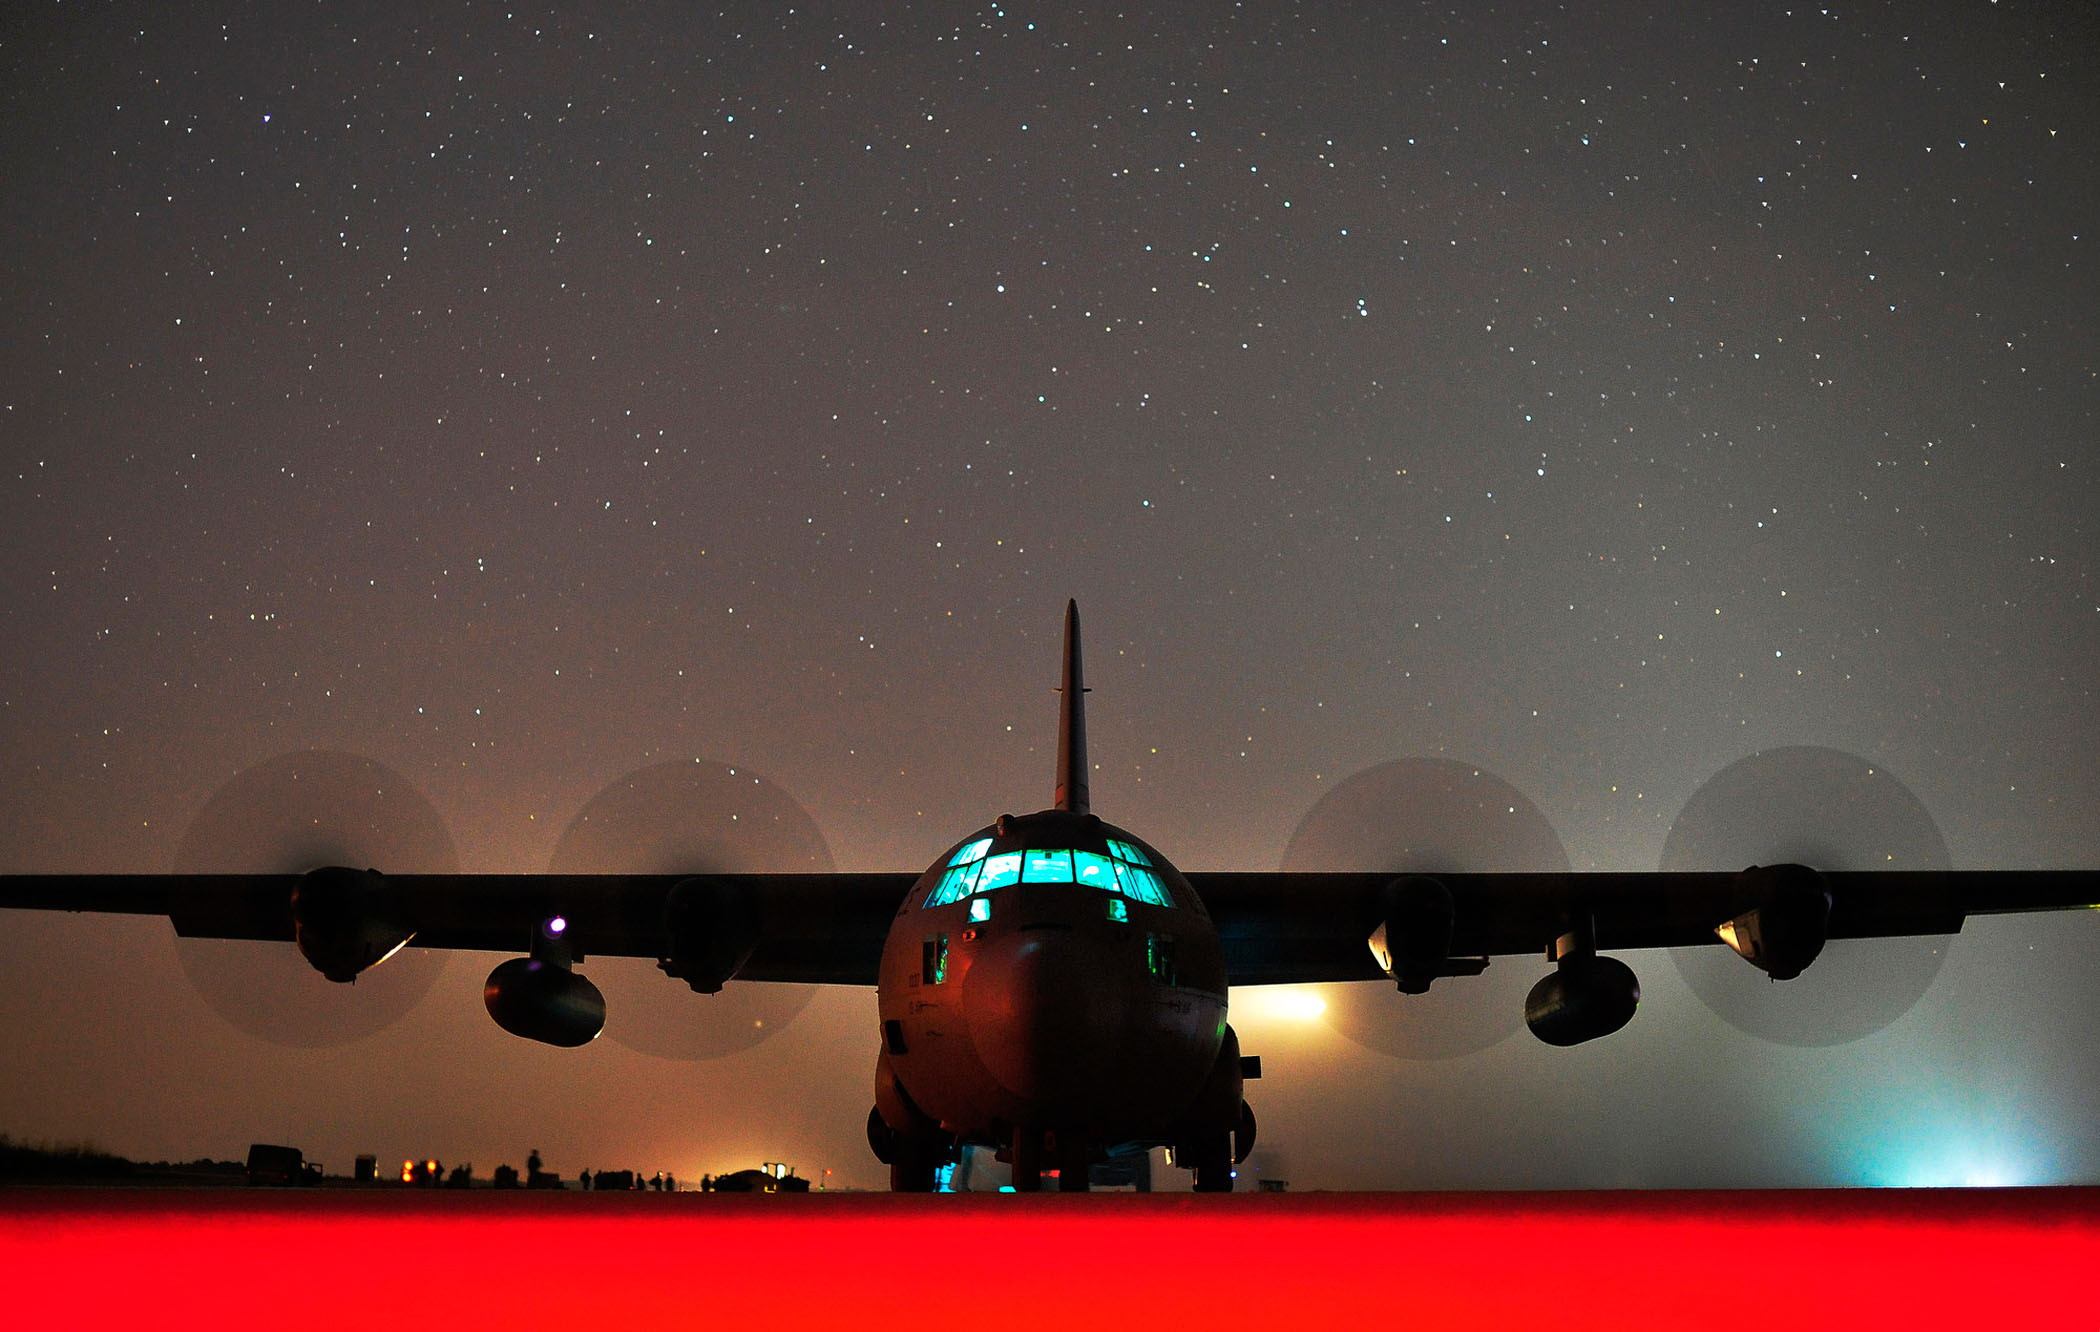 Red Carpet: Hercules Performs Engine-Running Offload